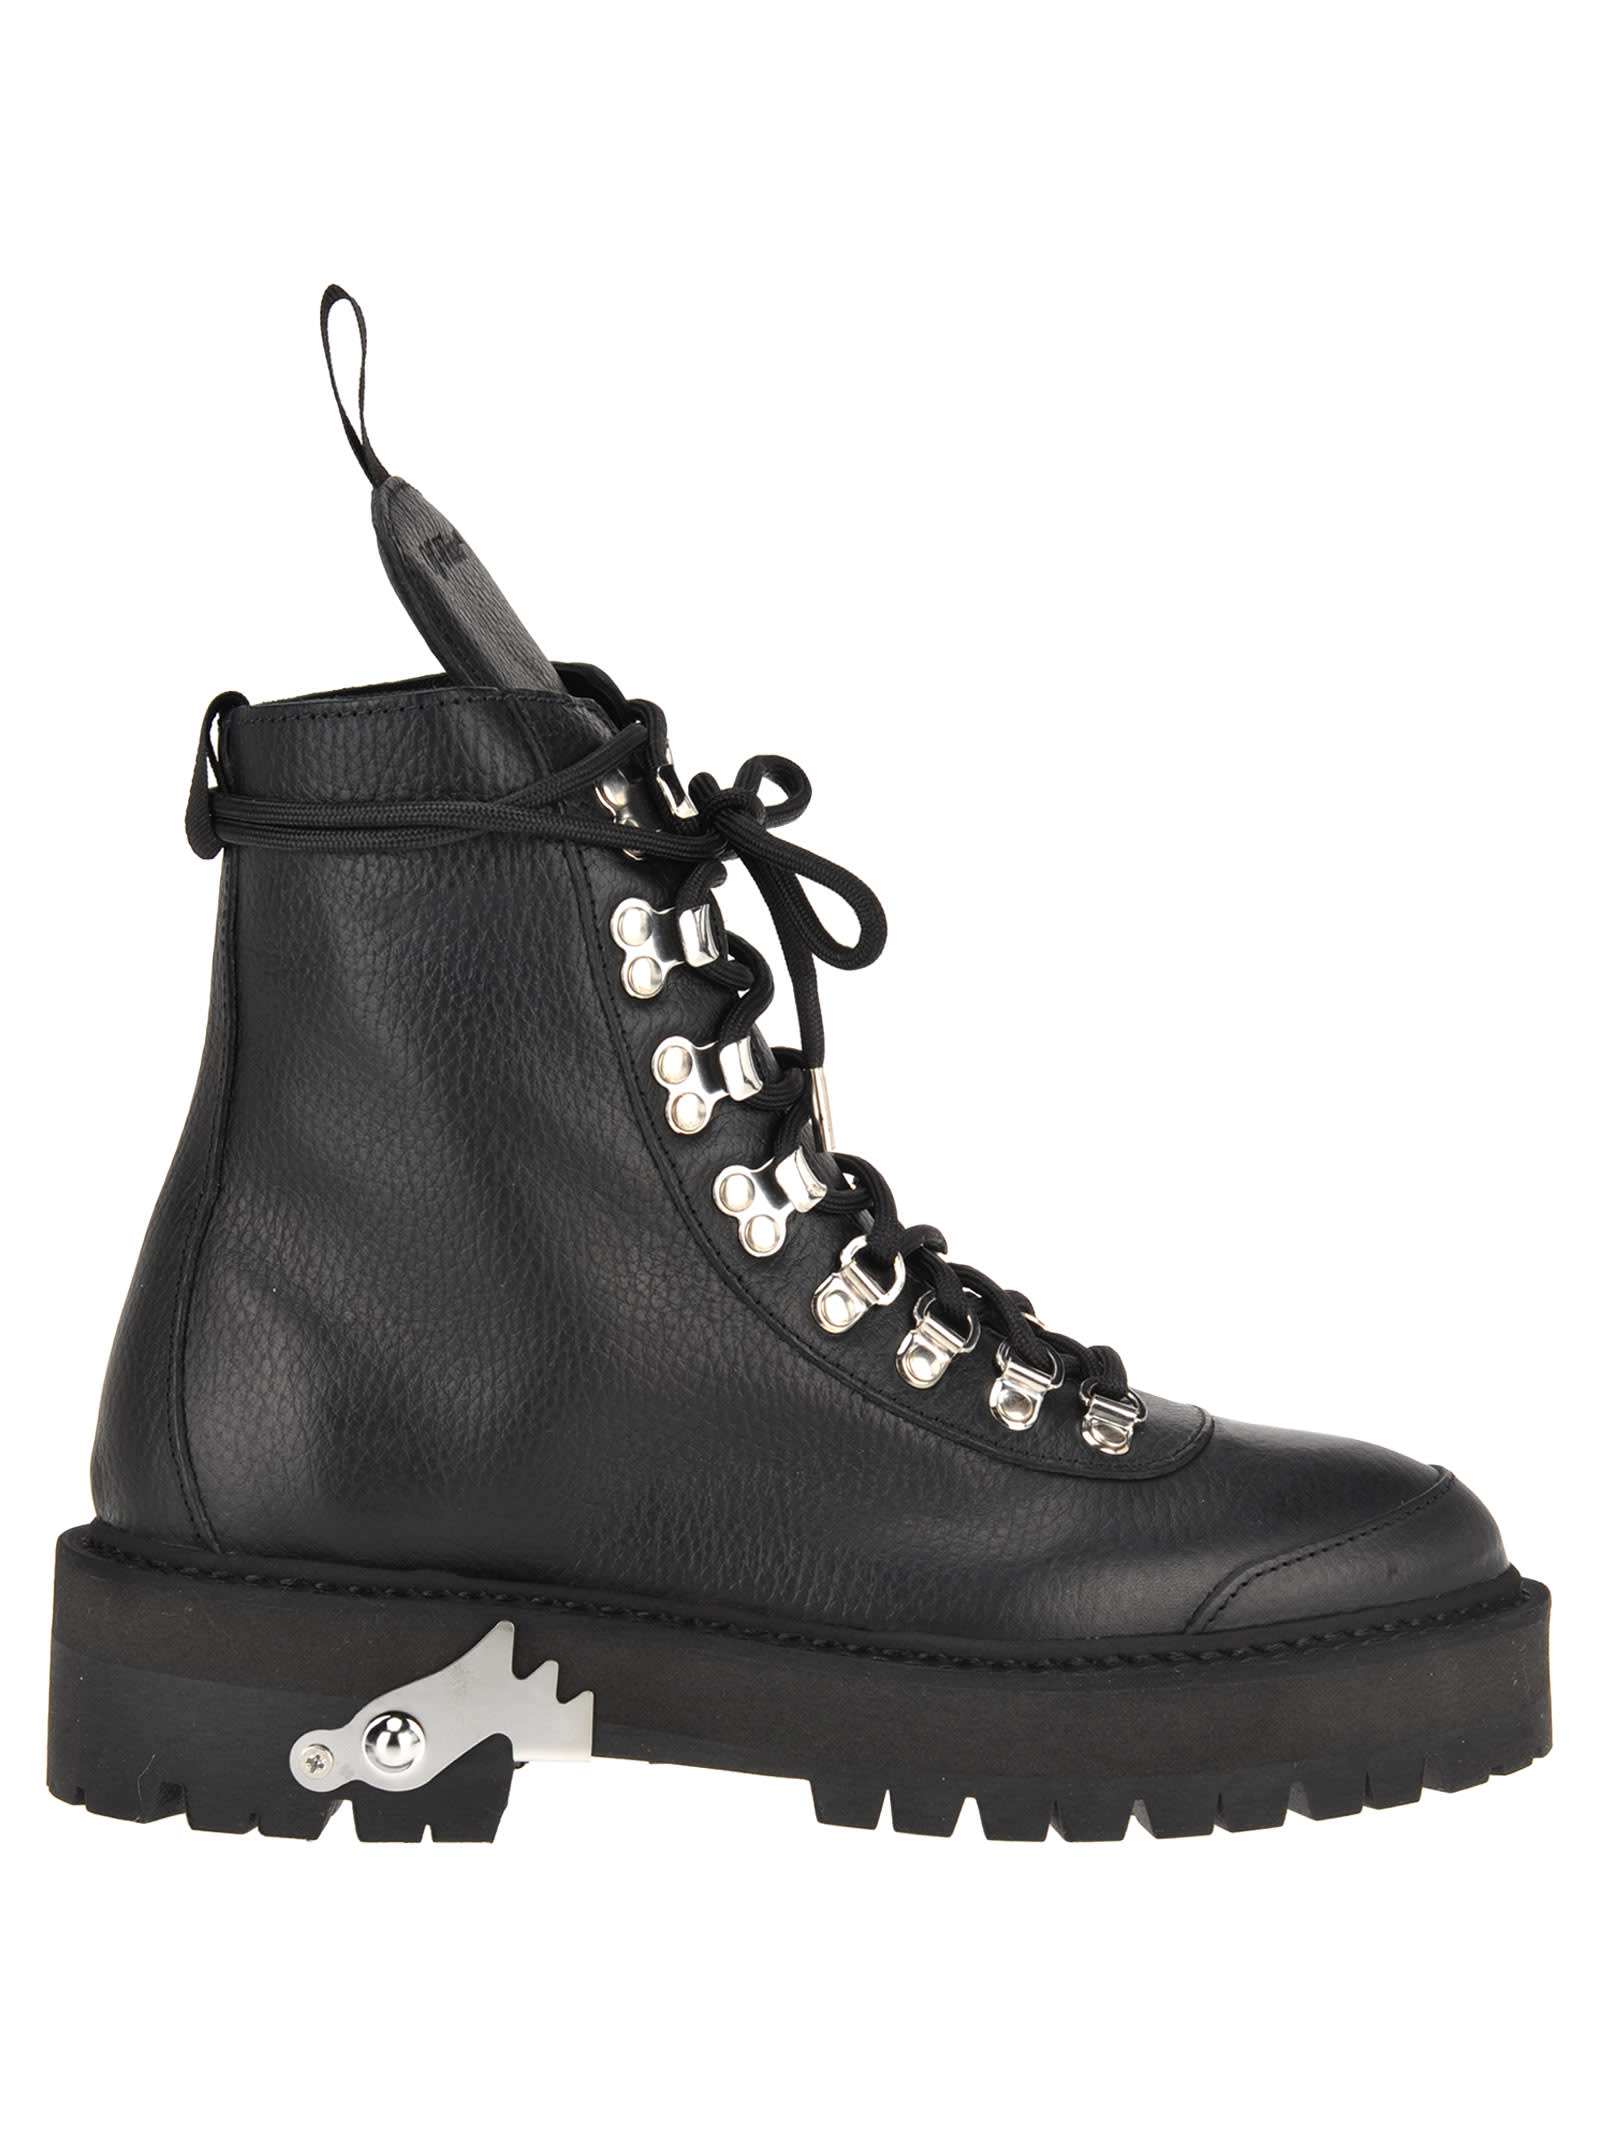 329b7545f03 Off White Leather Hiking Boot